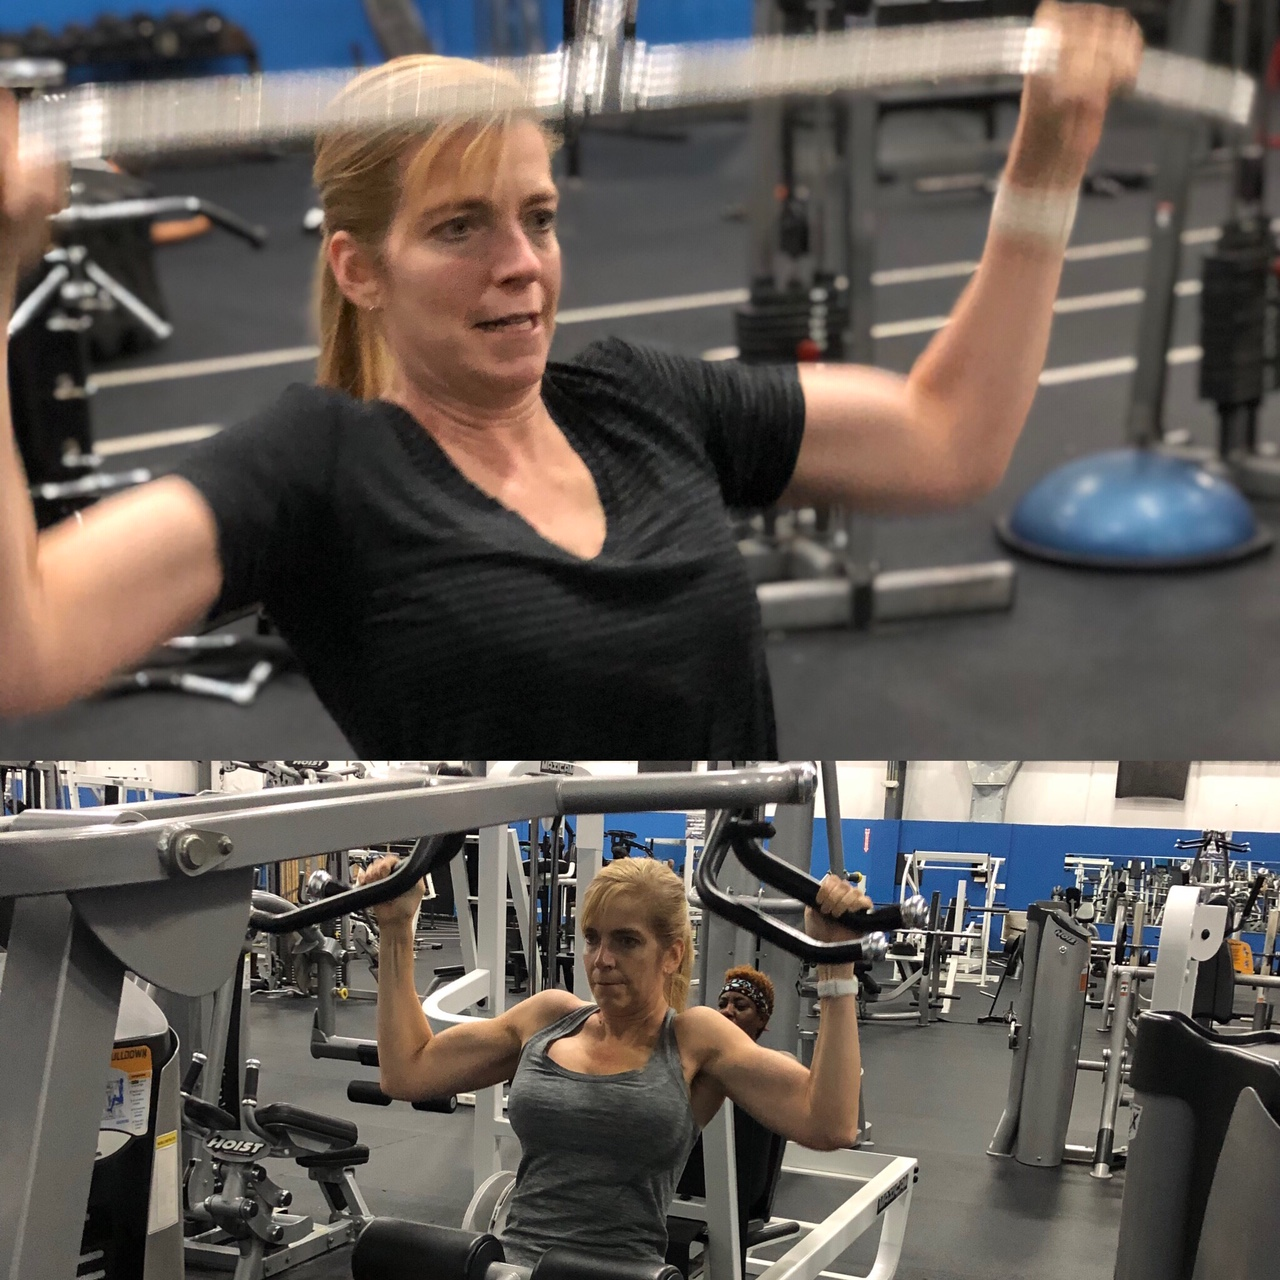 "Dianne Einstein. Founder ""Einstein Law LLC"" - I have consistently worked out all of my life. I was a college basketball player, and I continued working out even after my athletic career ended. When I turned 40, I noticed that I was working out more but not seeing results. My weight was in the normal range but I always had a rounded stomach, and I had difficulty in building muscle in my arms and shoulders. I tried different diets and different work-outs, but I stayed the same until I met Quincy Williams of Q-Fitness. I started working with him six months ago. He tweaked my diet and exercise program. I was working smarter, not harder. Even if I wasn't working directly with Quincy, he has an APP of exercises that I follow. As a result, my stomach is completely flat, my arms are muscular and I am down to the weight I was in high school! At 49 years old, I am in the best shape in my life. I also feel great! I highly recommend Quincy. He's amazing."